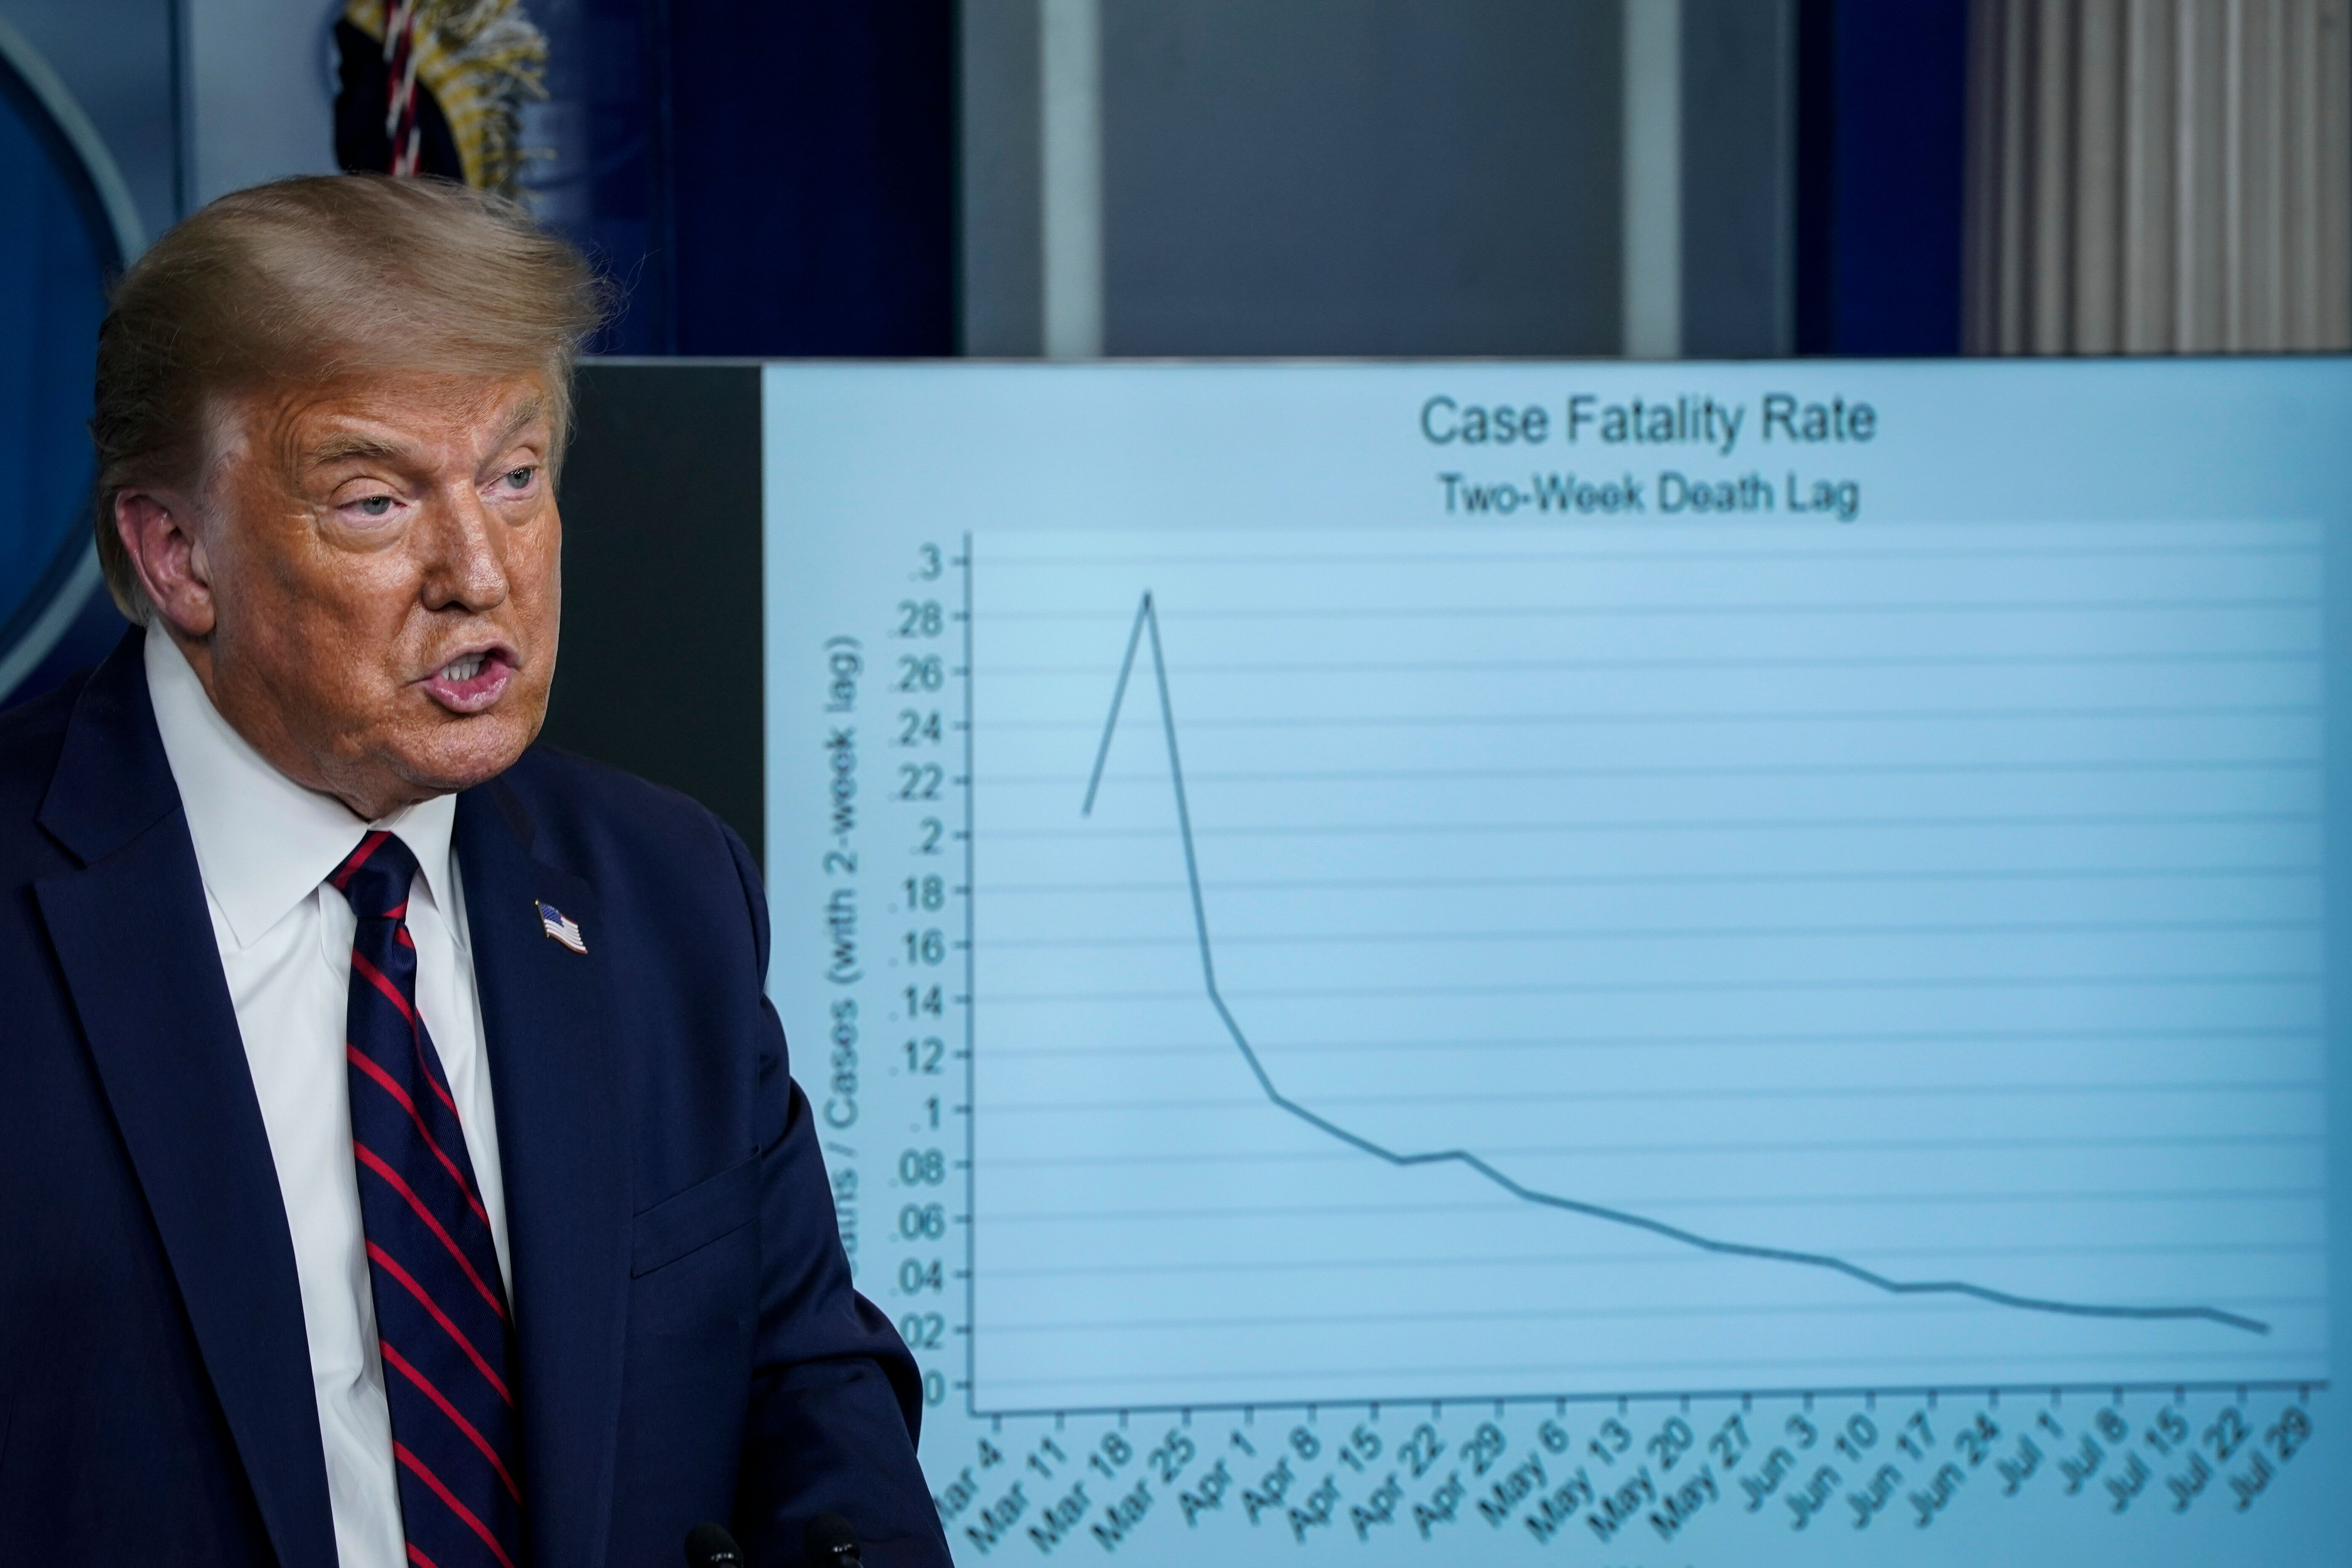 As Trump's mishandling of the coronavirus crisis has threatened his poll numbers ahead of the November election, he has made